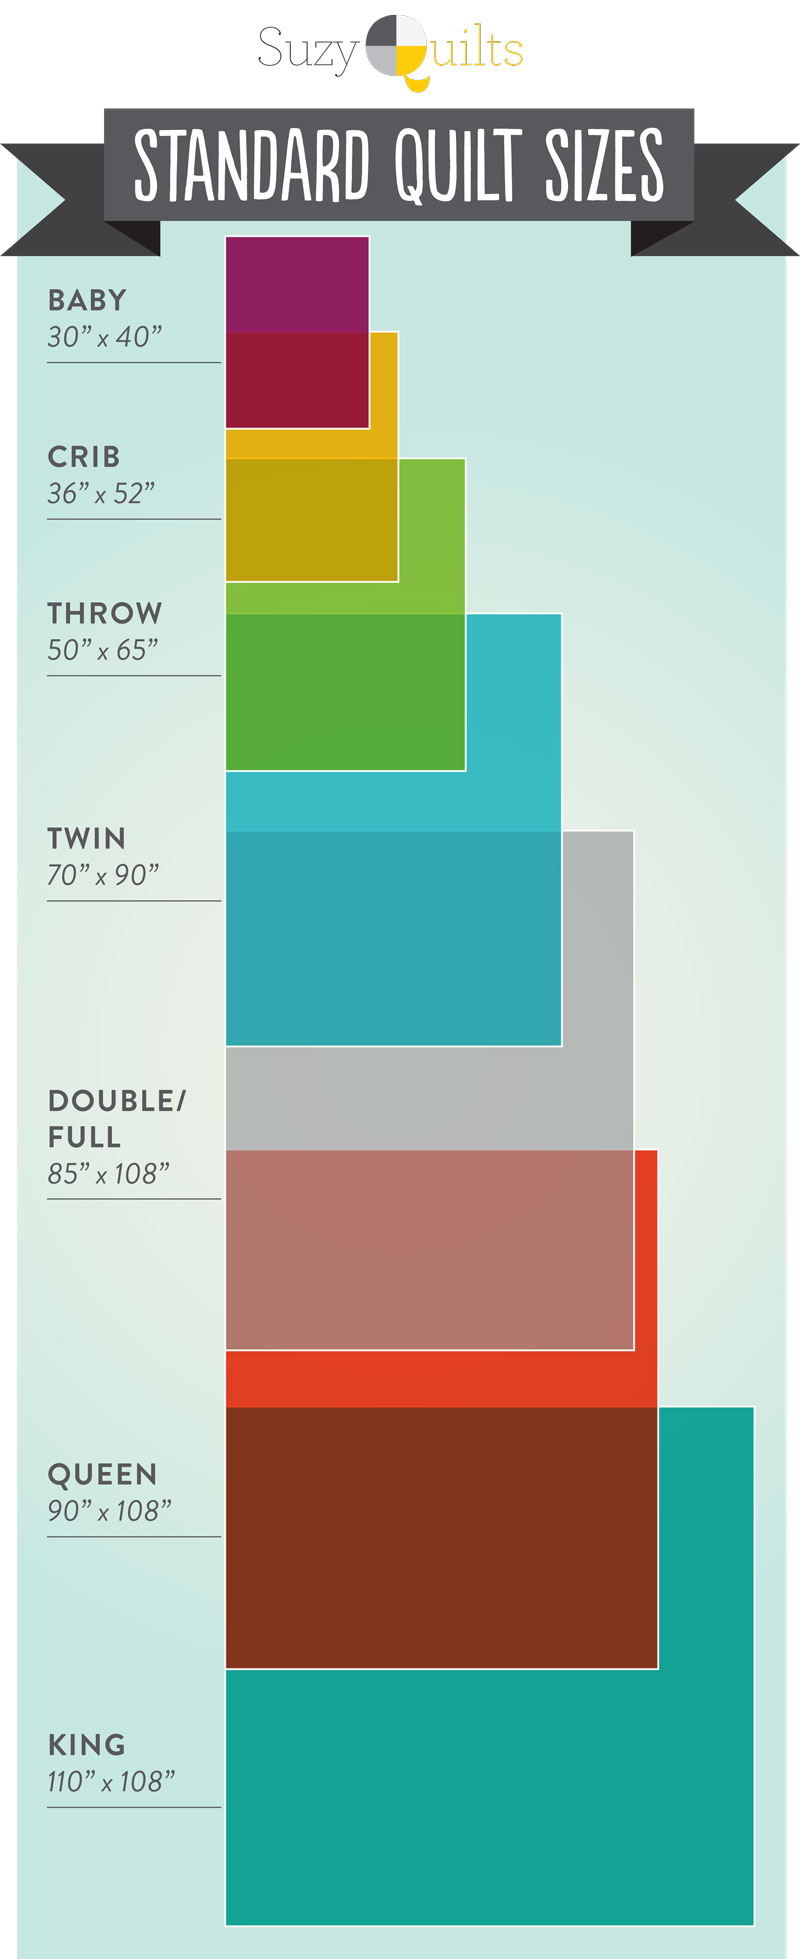 A quilt sizes chart infographic to visually show standard quilting sizes and standard quilt batting | Suzy Quilts - https://suzyquilts.com/quilt-sizes-chart/